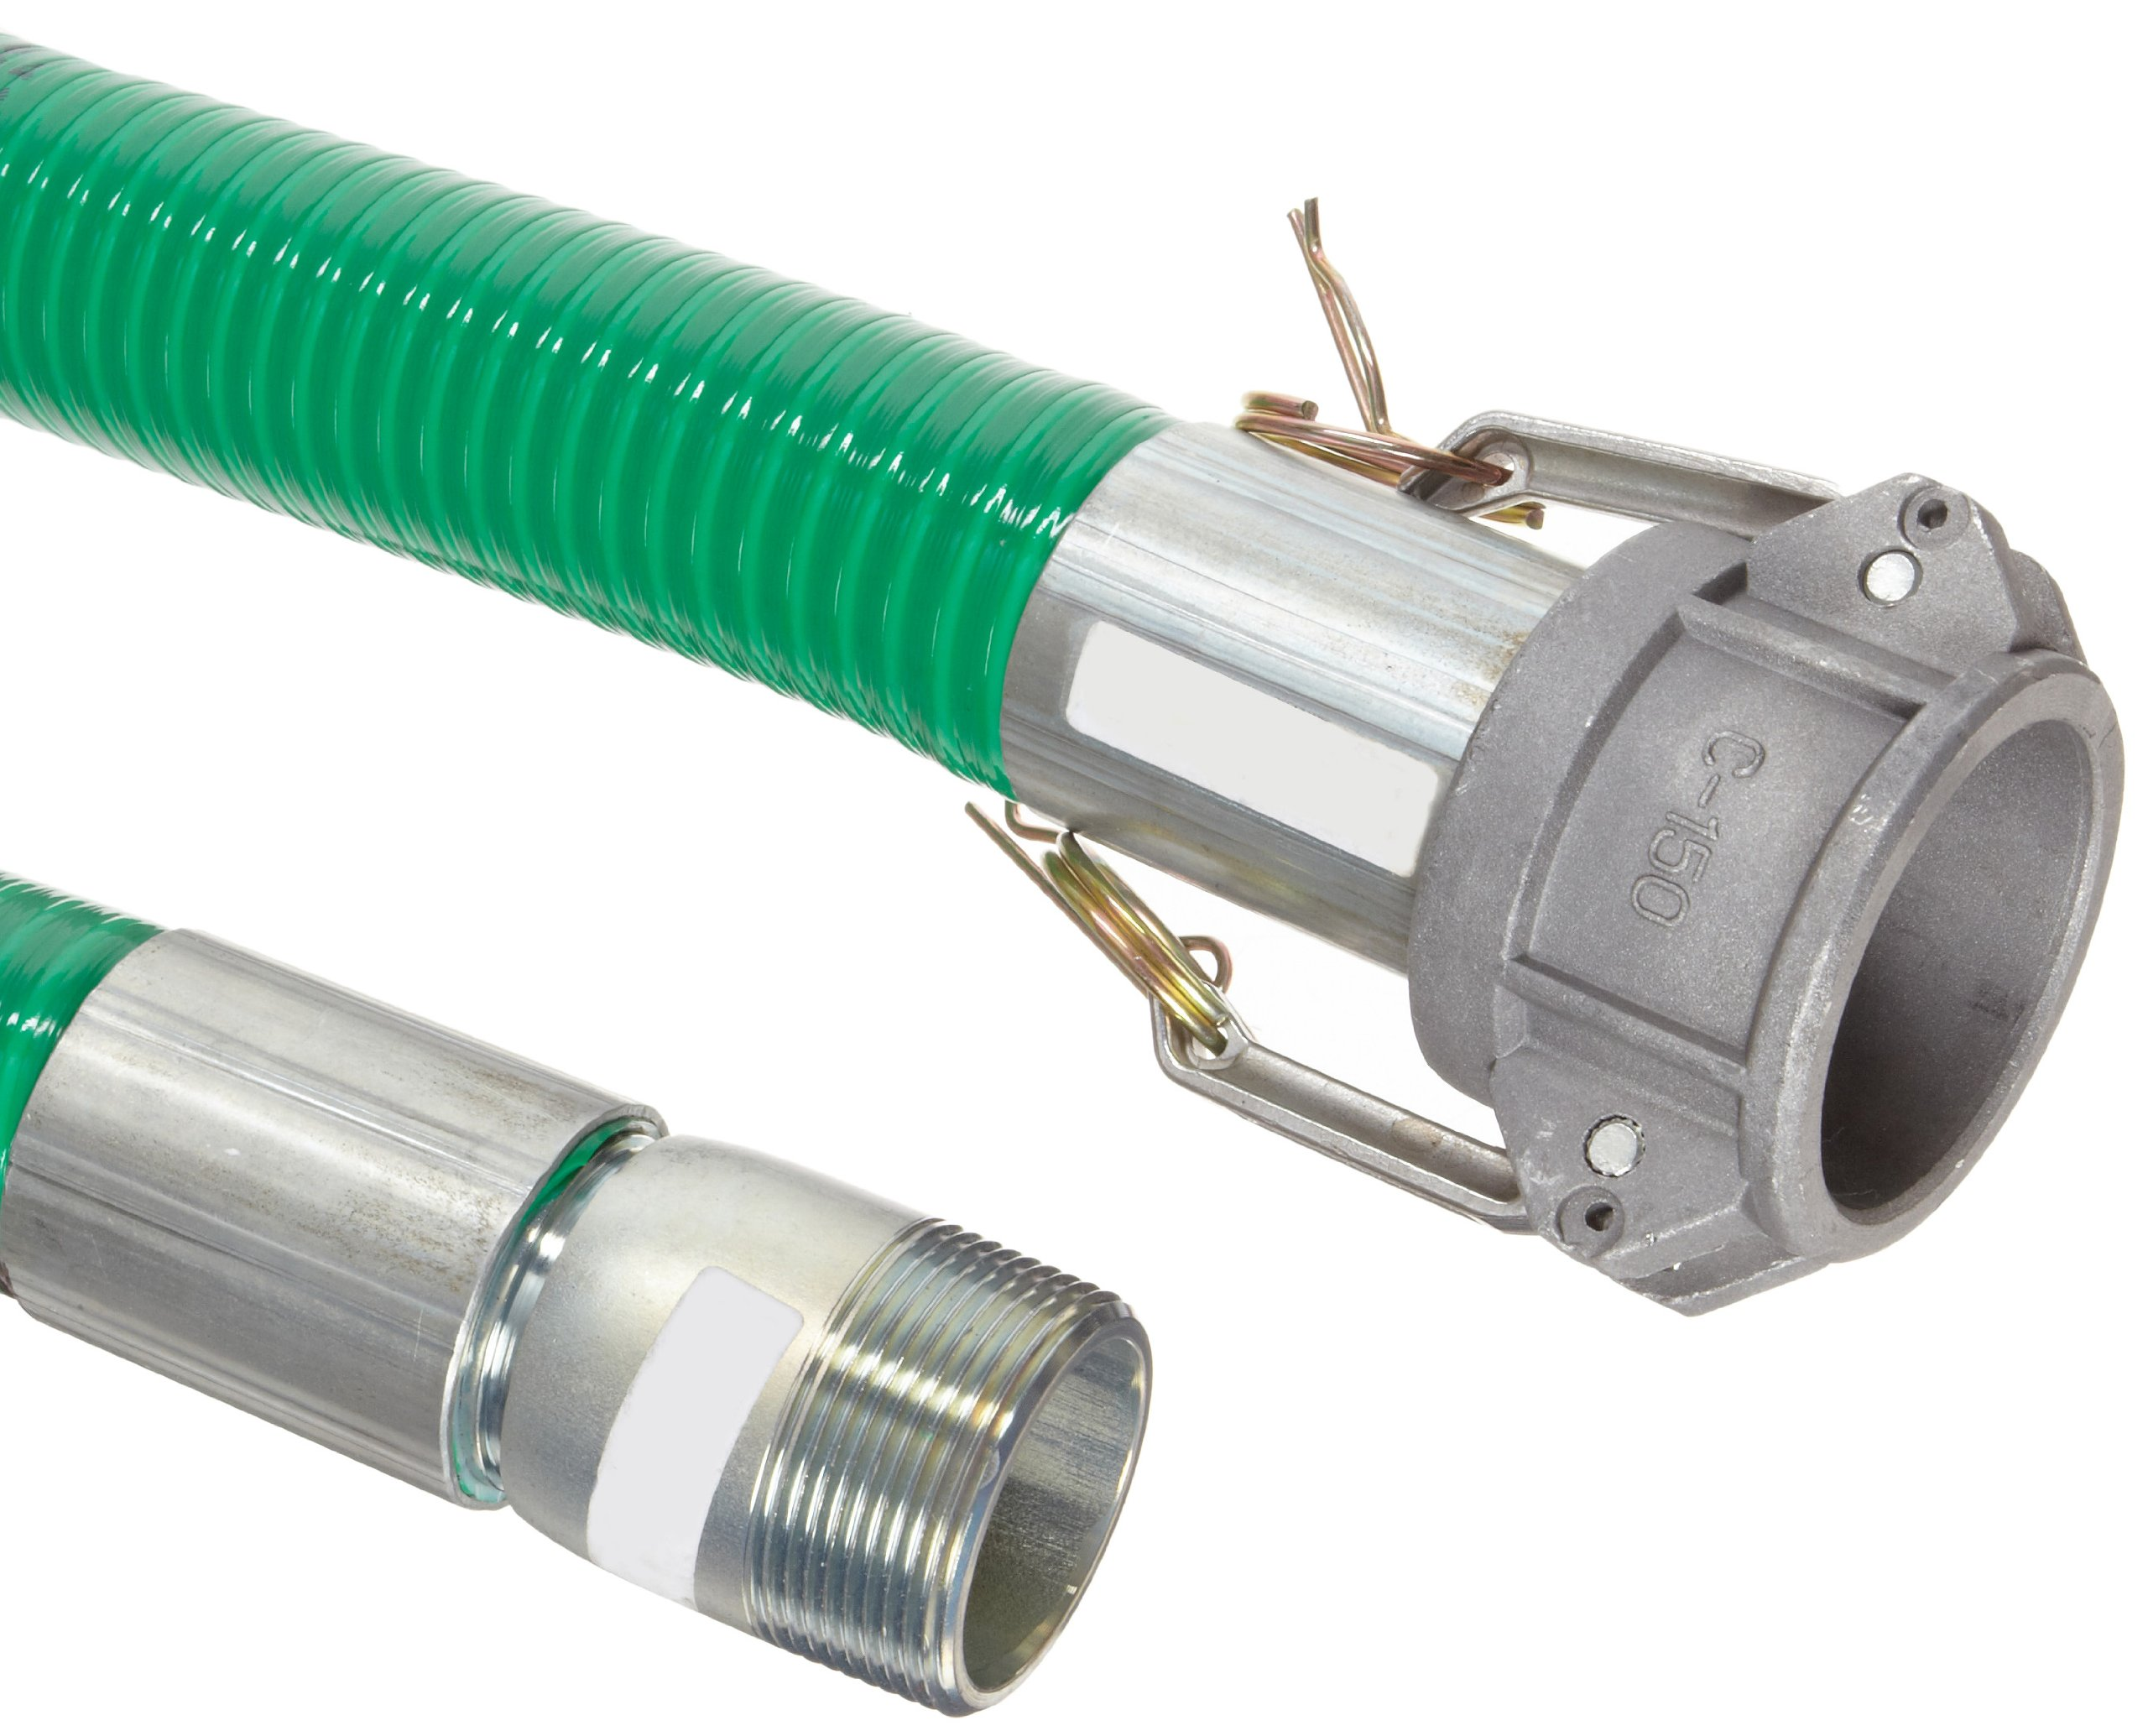 Goodyear EP Spiraflex Aggie Green PVC Suction/Discharge Hose Assembly, 1-1/2'' Aluminum Cam And Groove Female x NPT Male Connection, 29mmHg Vacuum Rating 89 PSI Maximum Pressure, 20' Length, 1-1/2'' ID